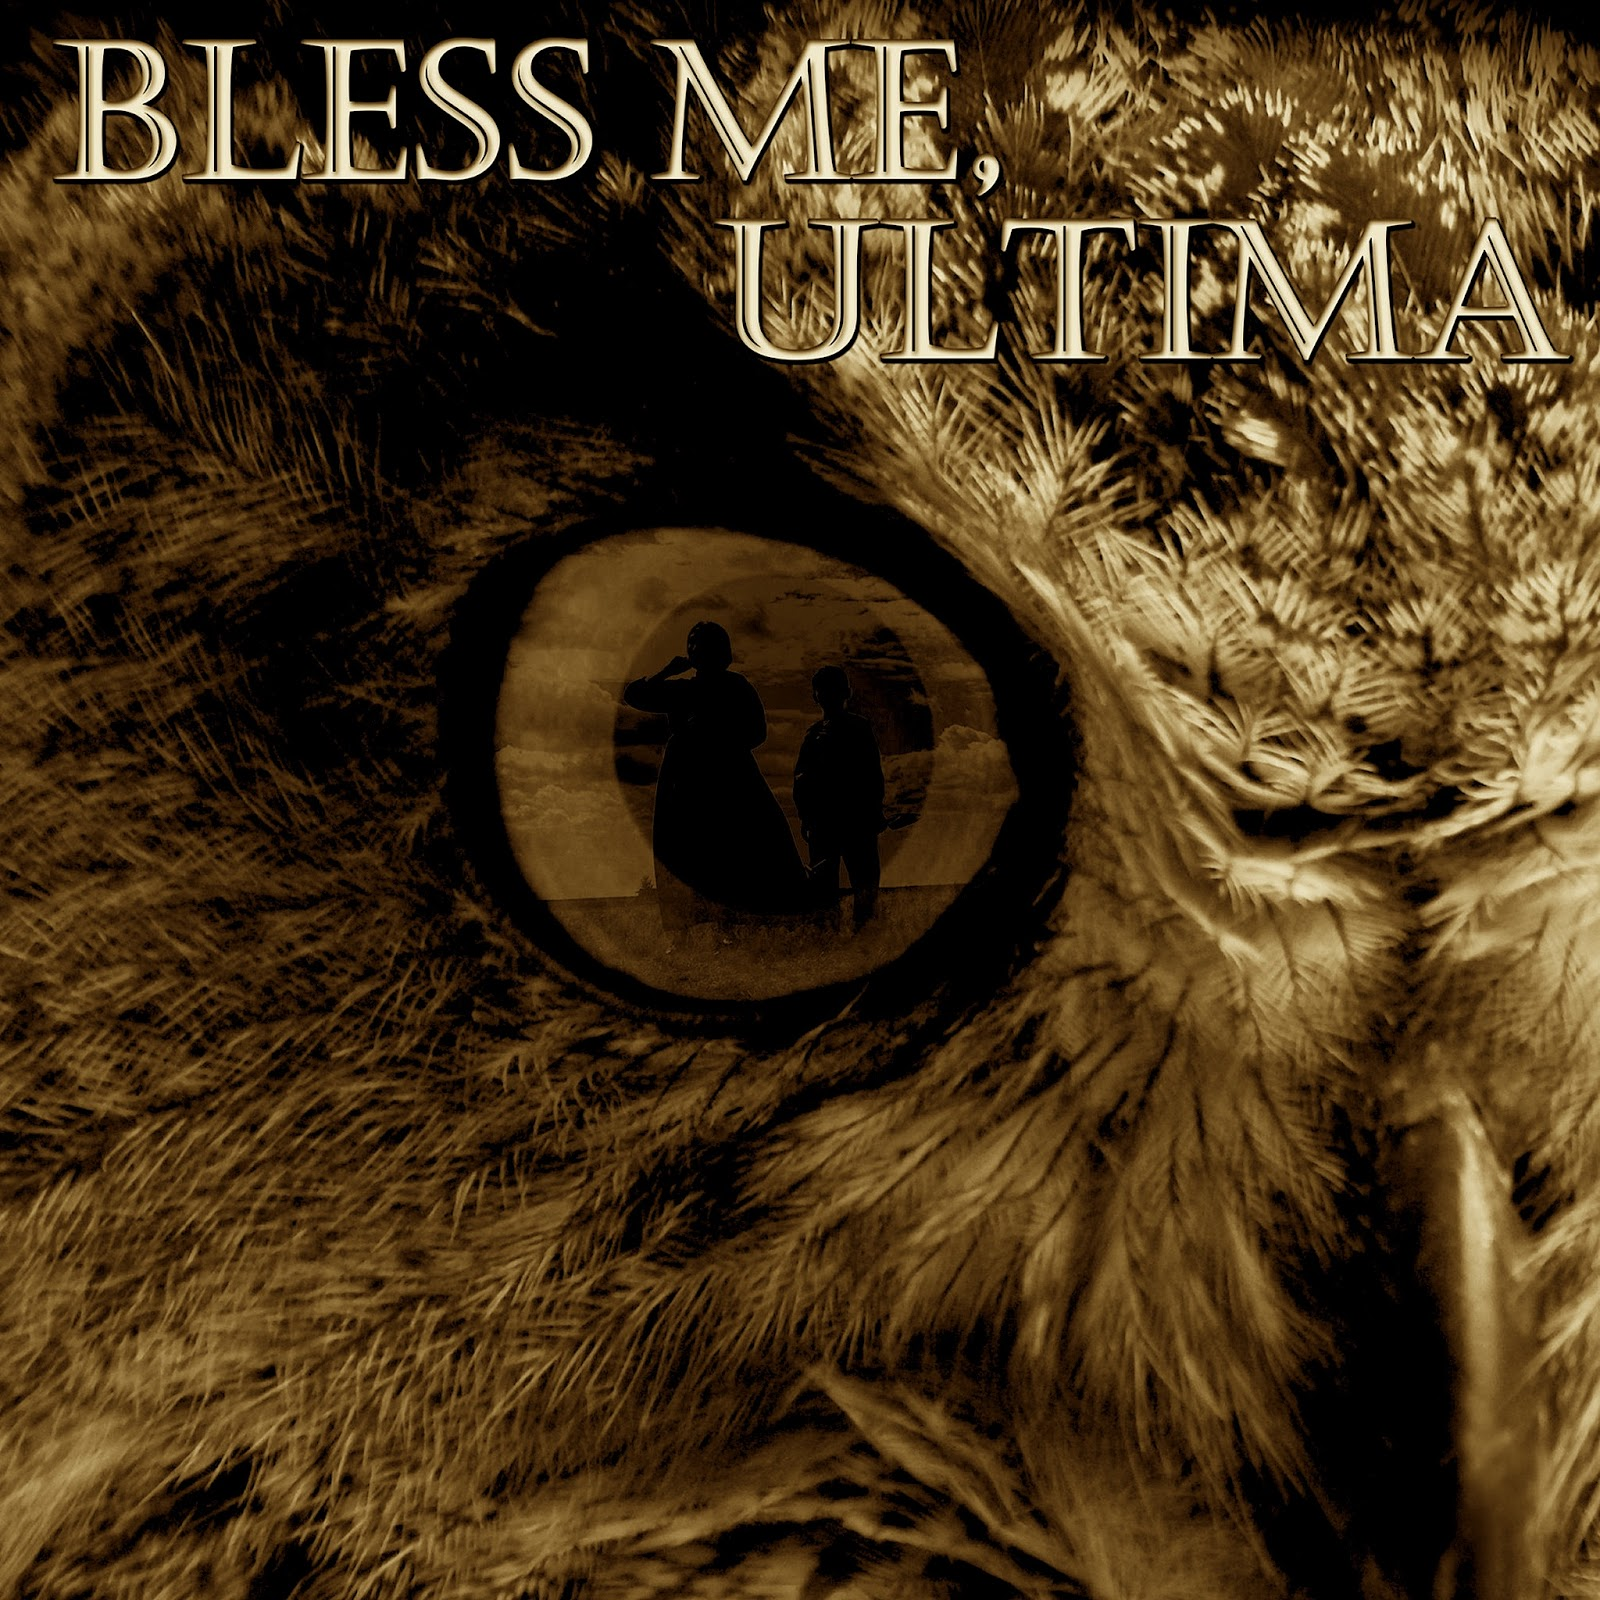 bless me ultia Get an answer for 'what are some marez vs luna scenes in the novel bless me, ultima' and find homework help for other bless me, ultima questions at enotes.